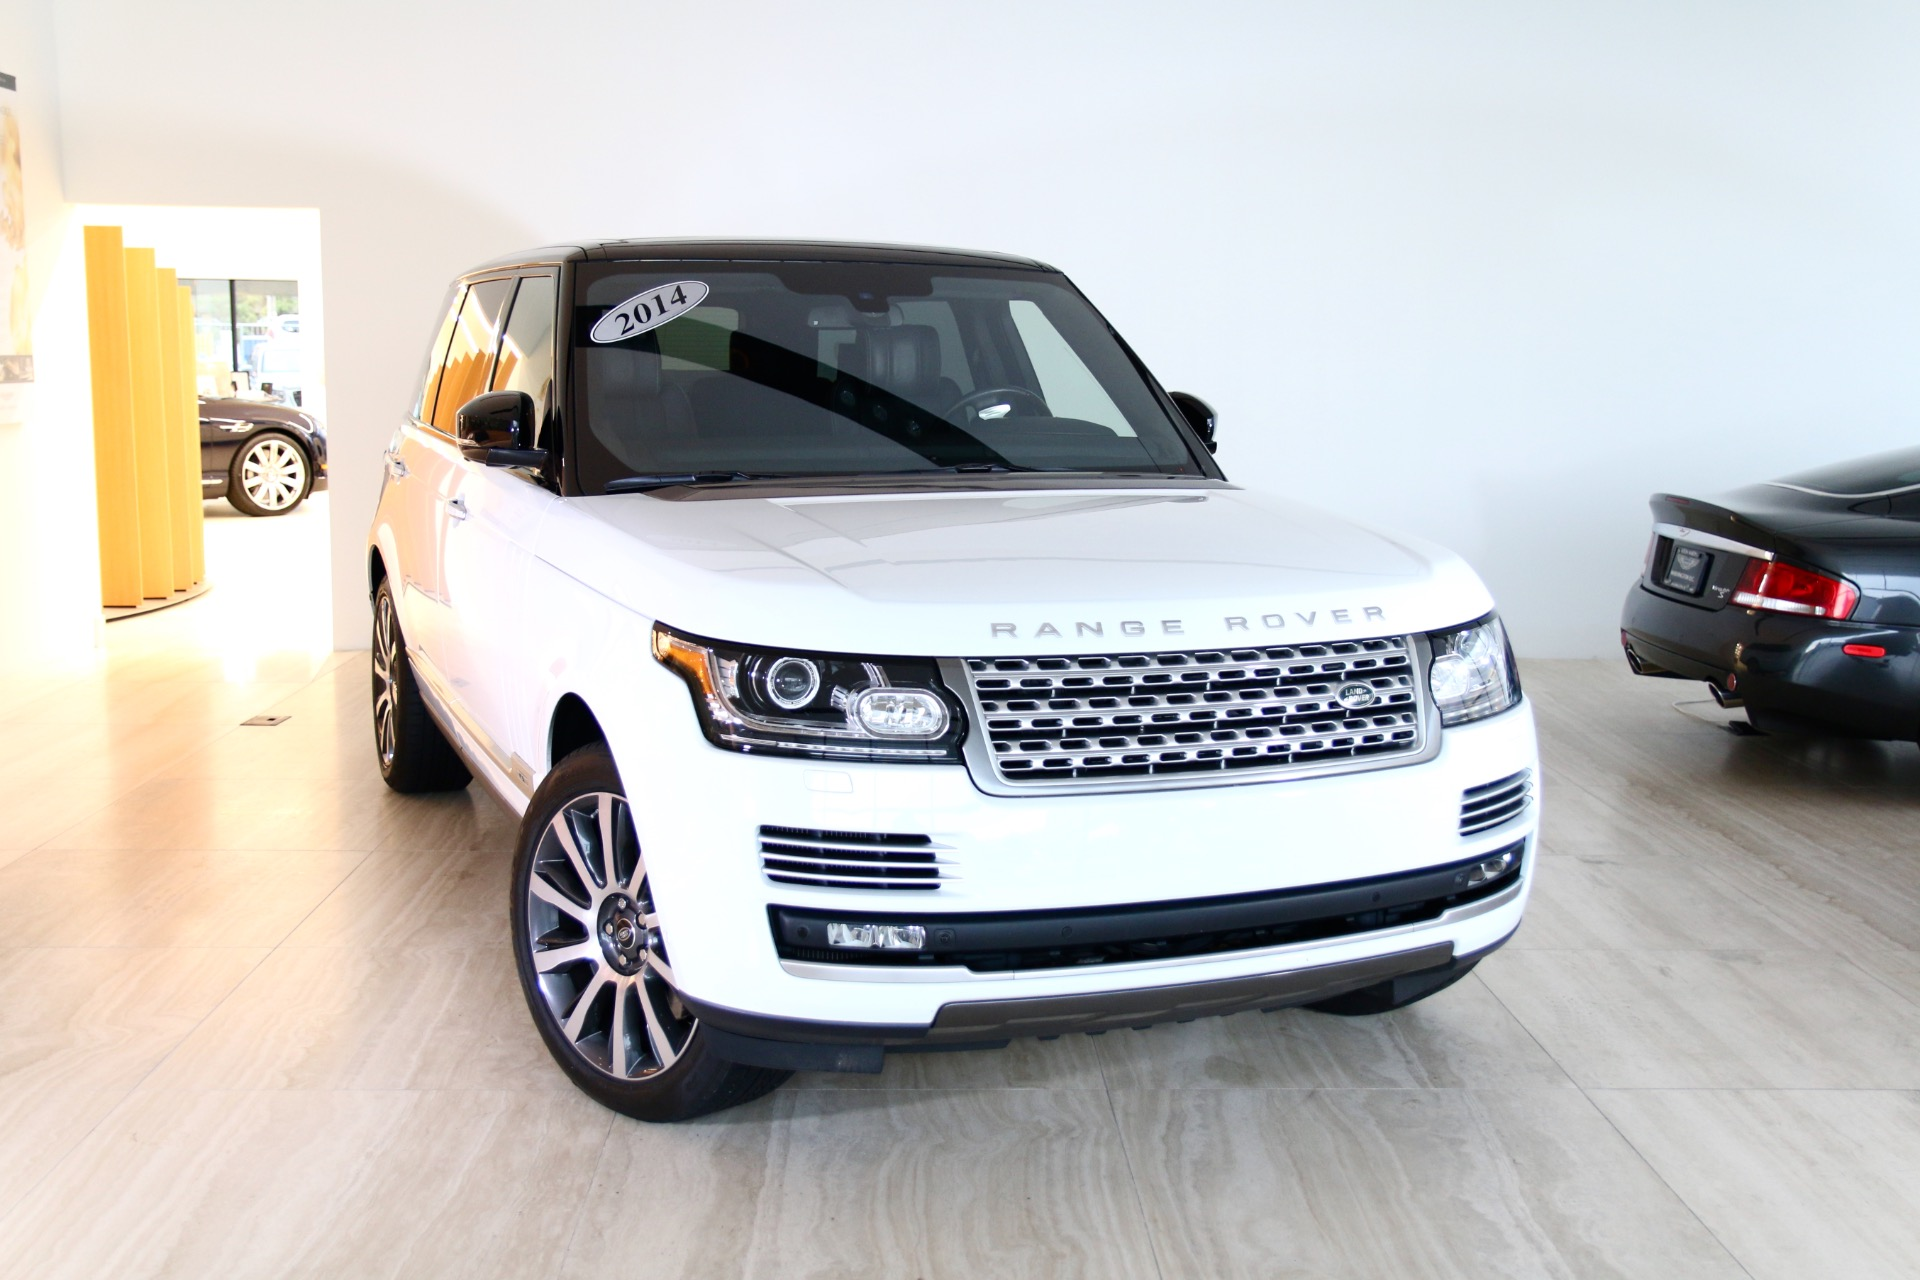 2014 land rover range rover autobiography lwb stock 8n017975a for sale near vienna va va - Land rover garage near me ...